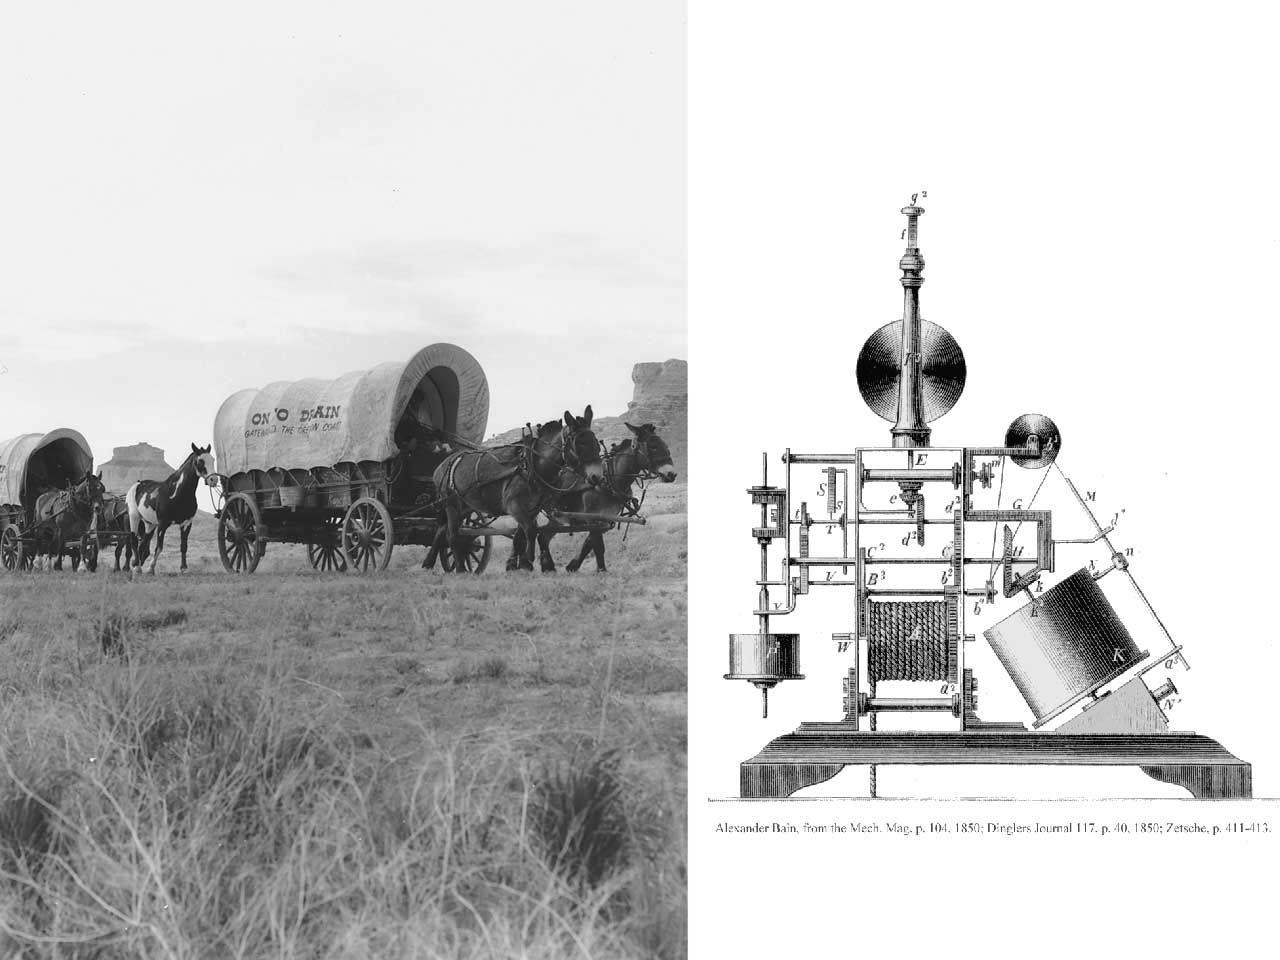 The fax machine was invented the same year that the first wagon crossed the Oregon Trail, 1843.